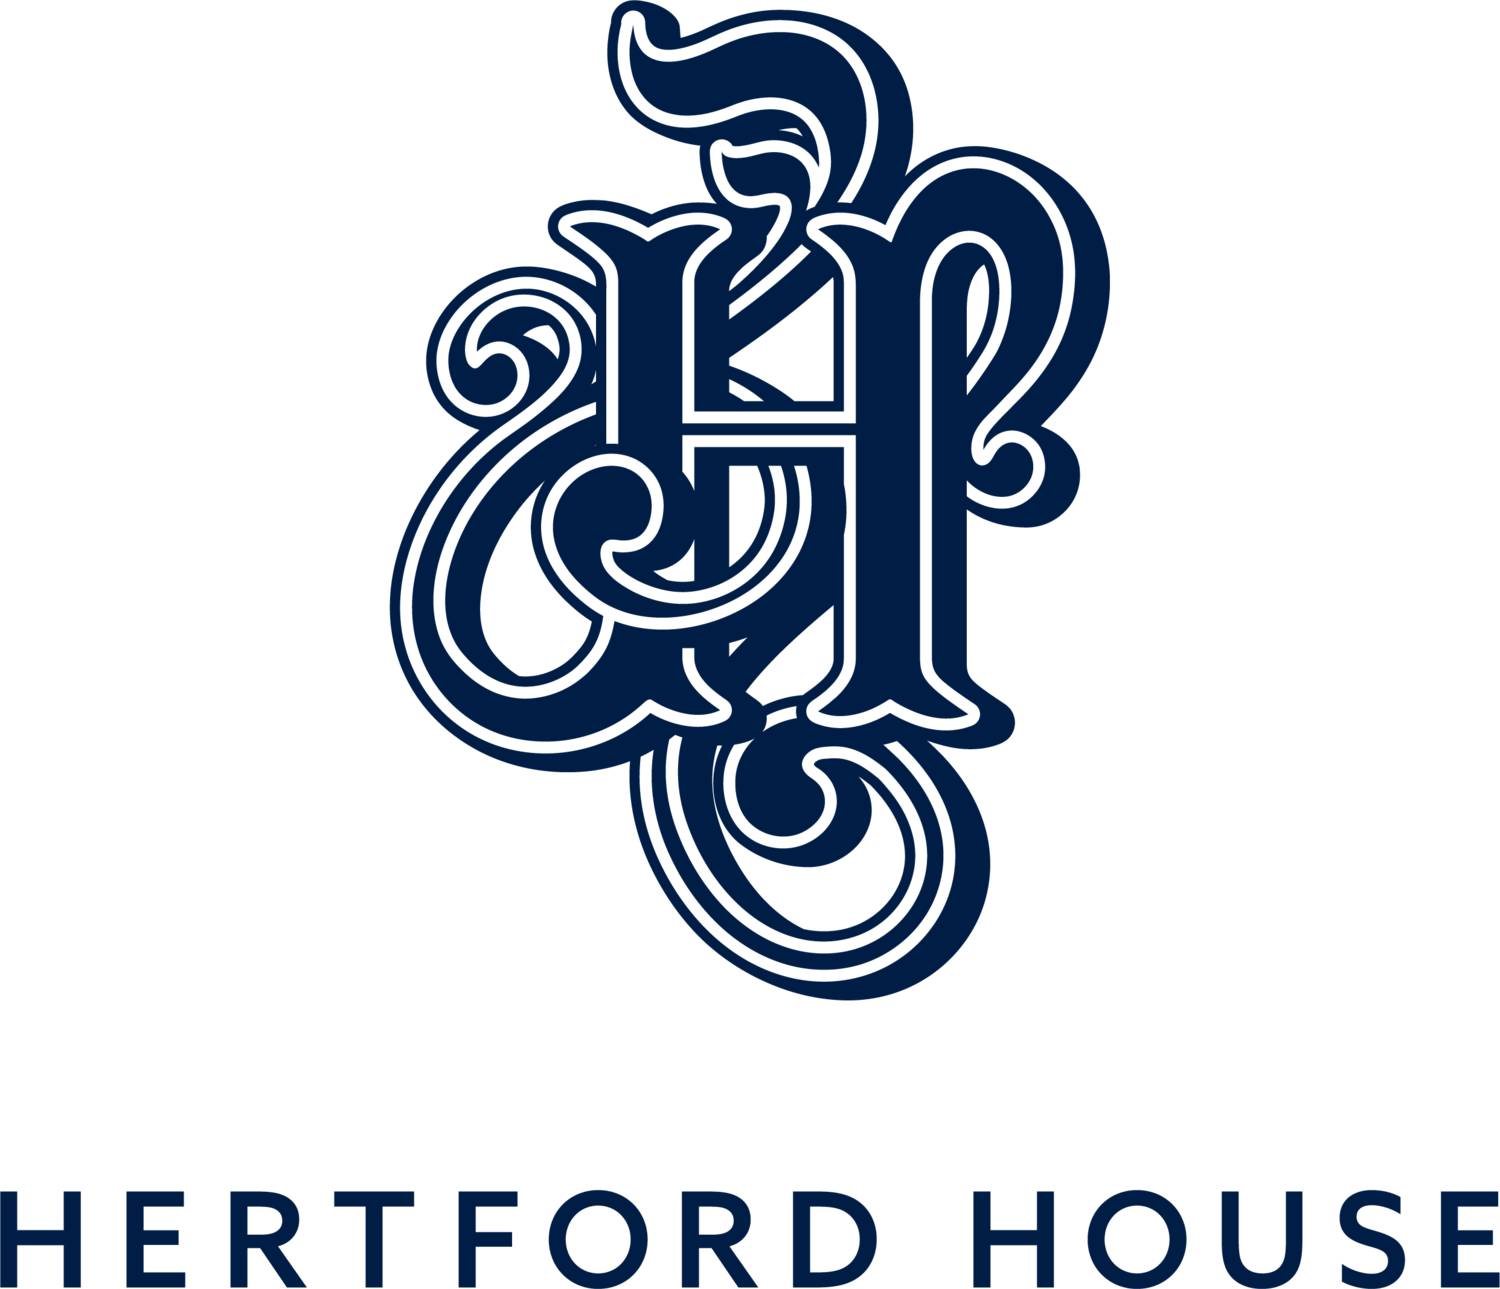 Hertford House